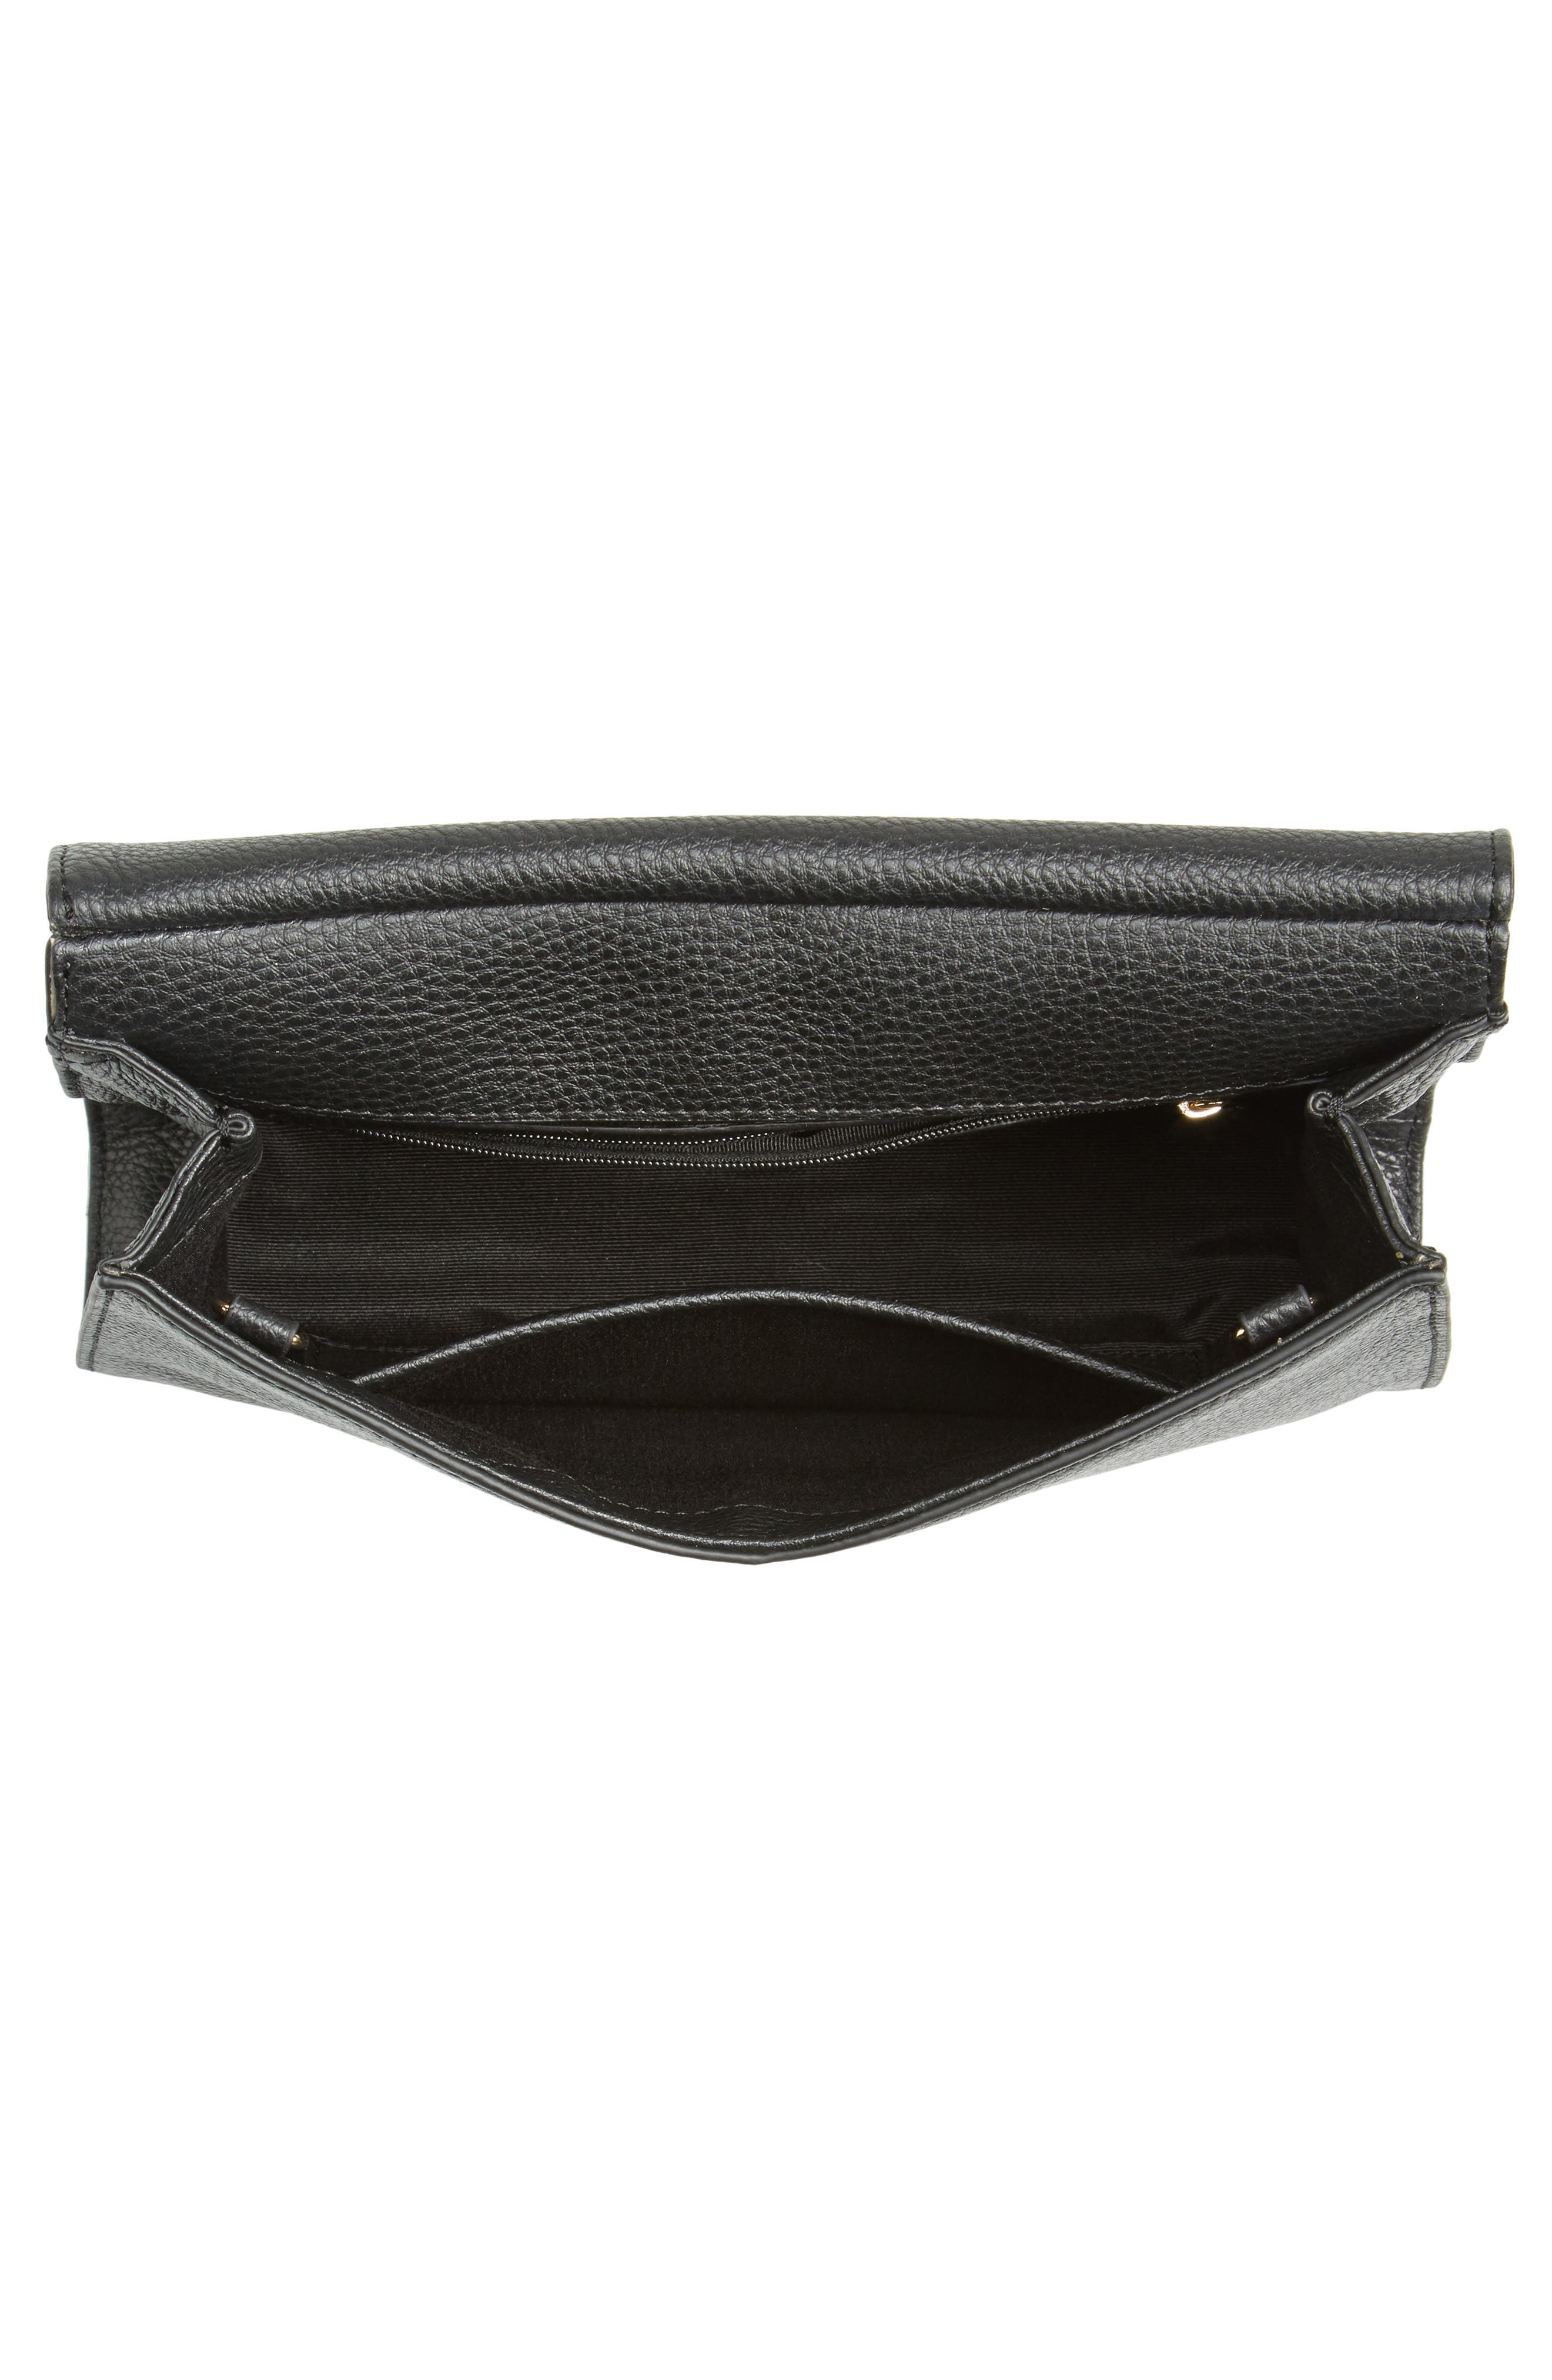 Astor Pebbled Leather Flap Clutch,                             Alternate thumbnail 13, color,